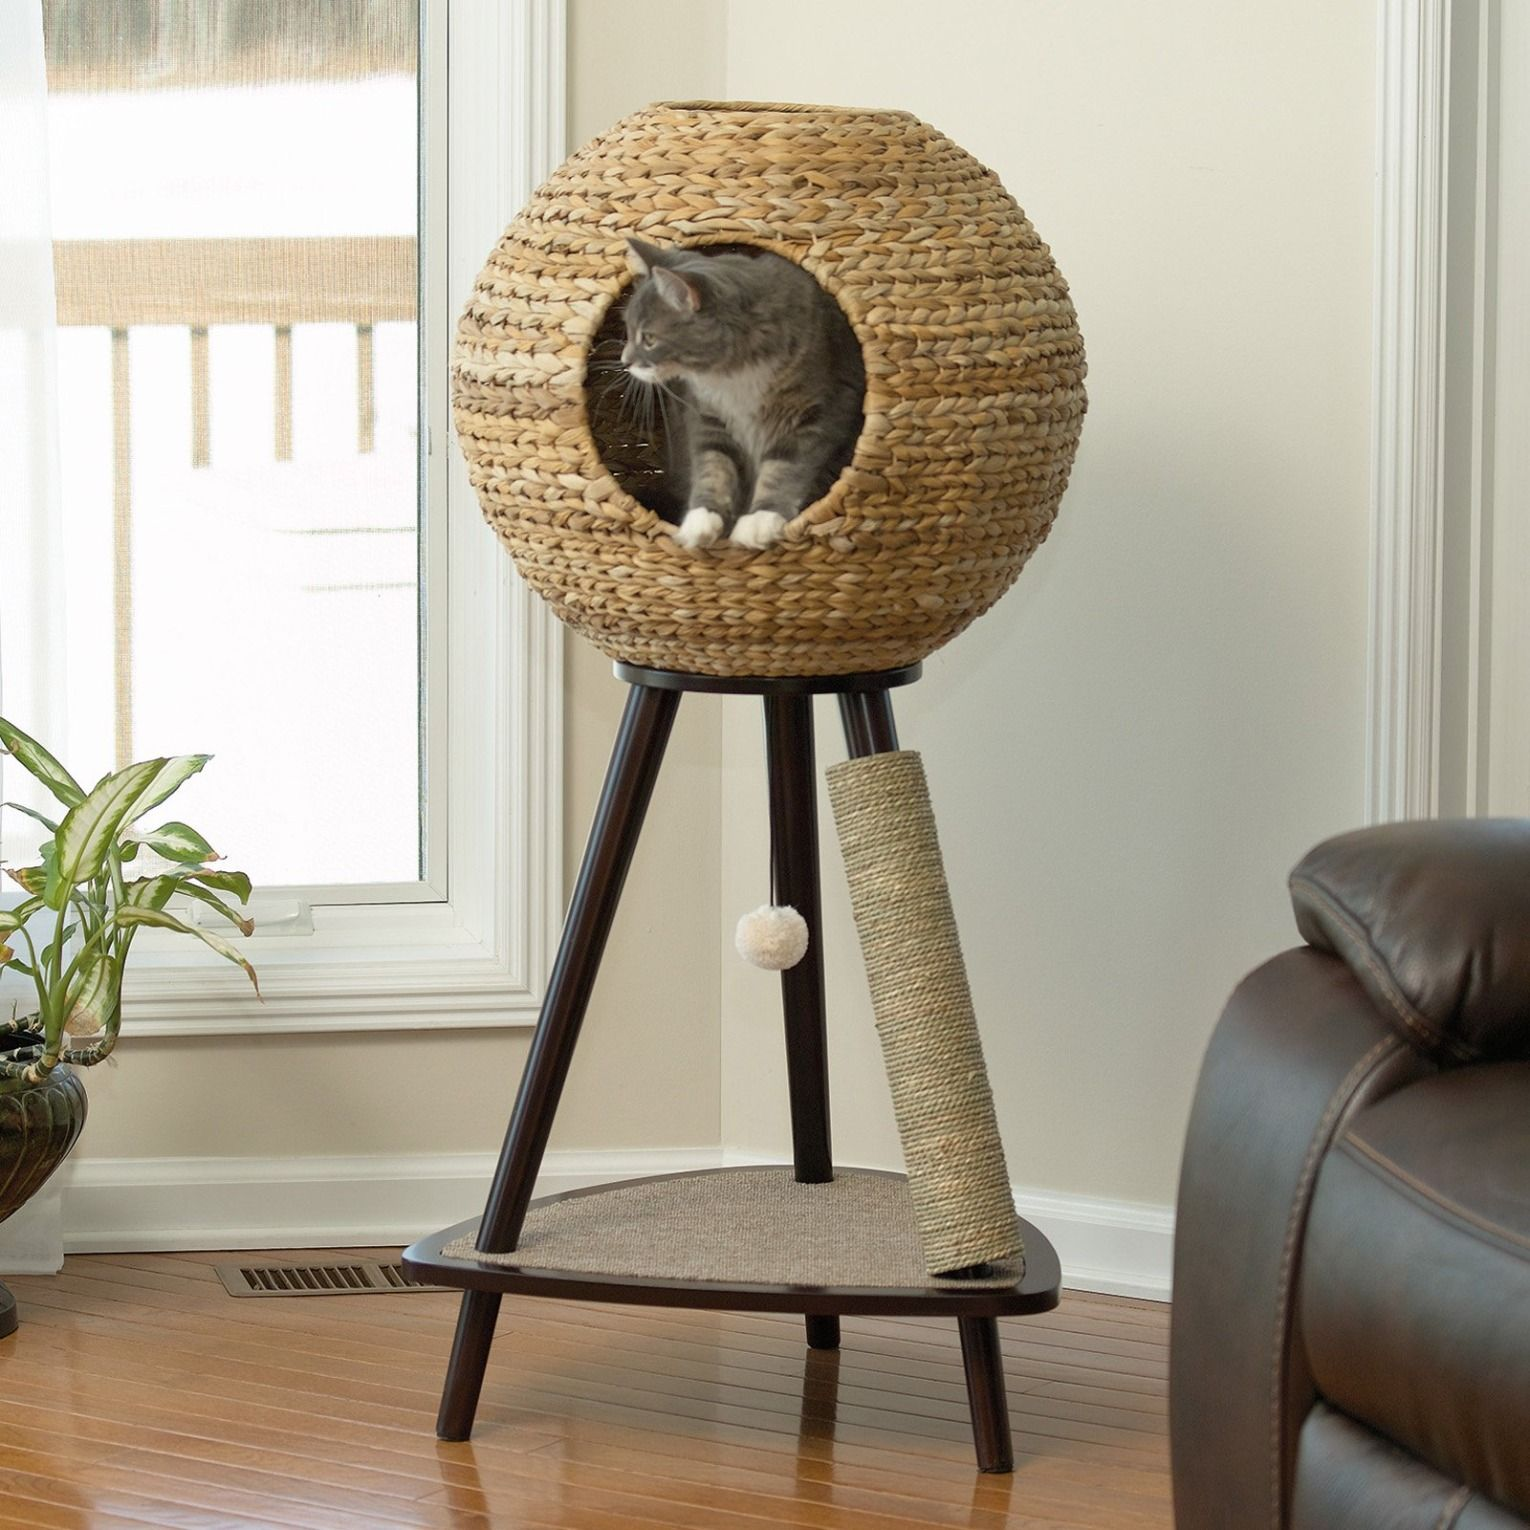 stylish cat furniture. With This Stylish Cat Tower, There\u0027s Finally Furniture You\u0027ll Actually Want To I